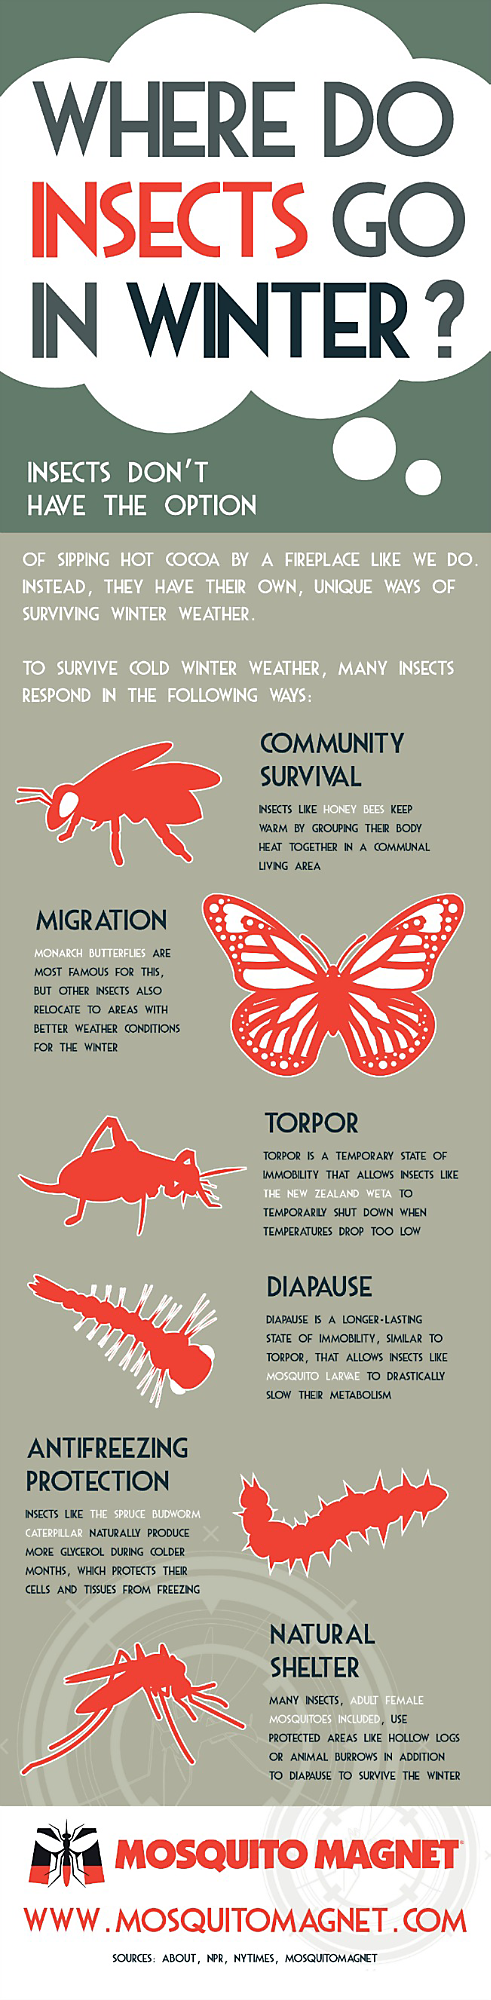 Mosquito Magnet graphic - Where do insects go in winter?